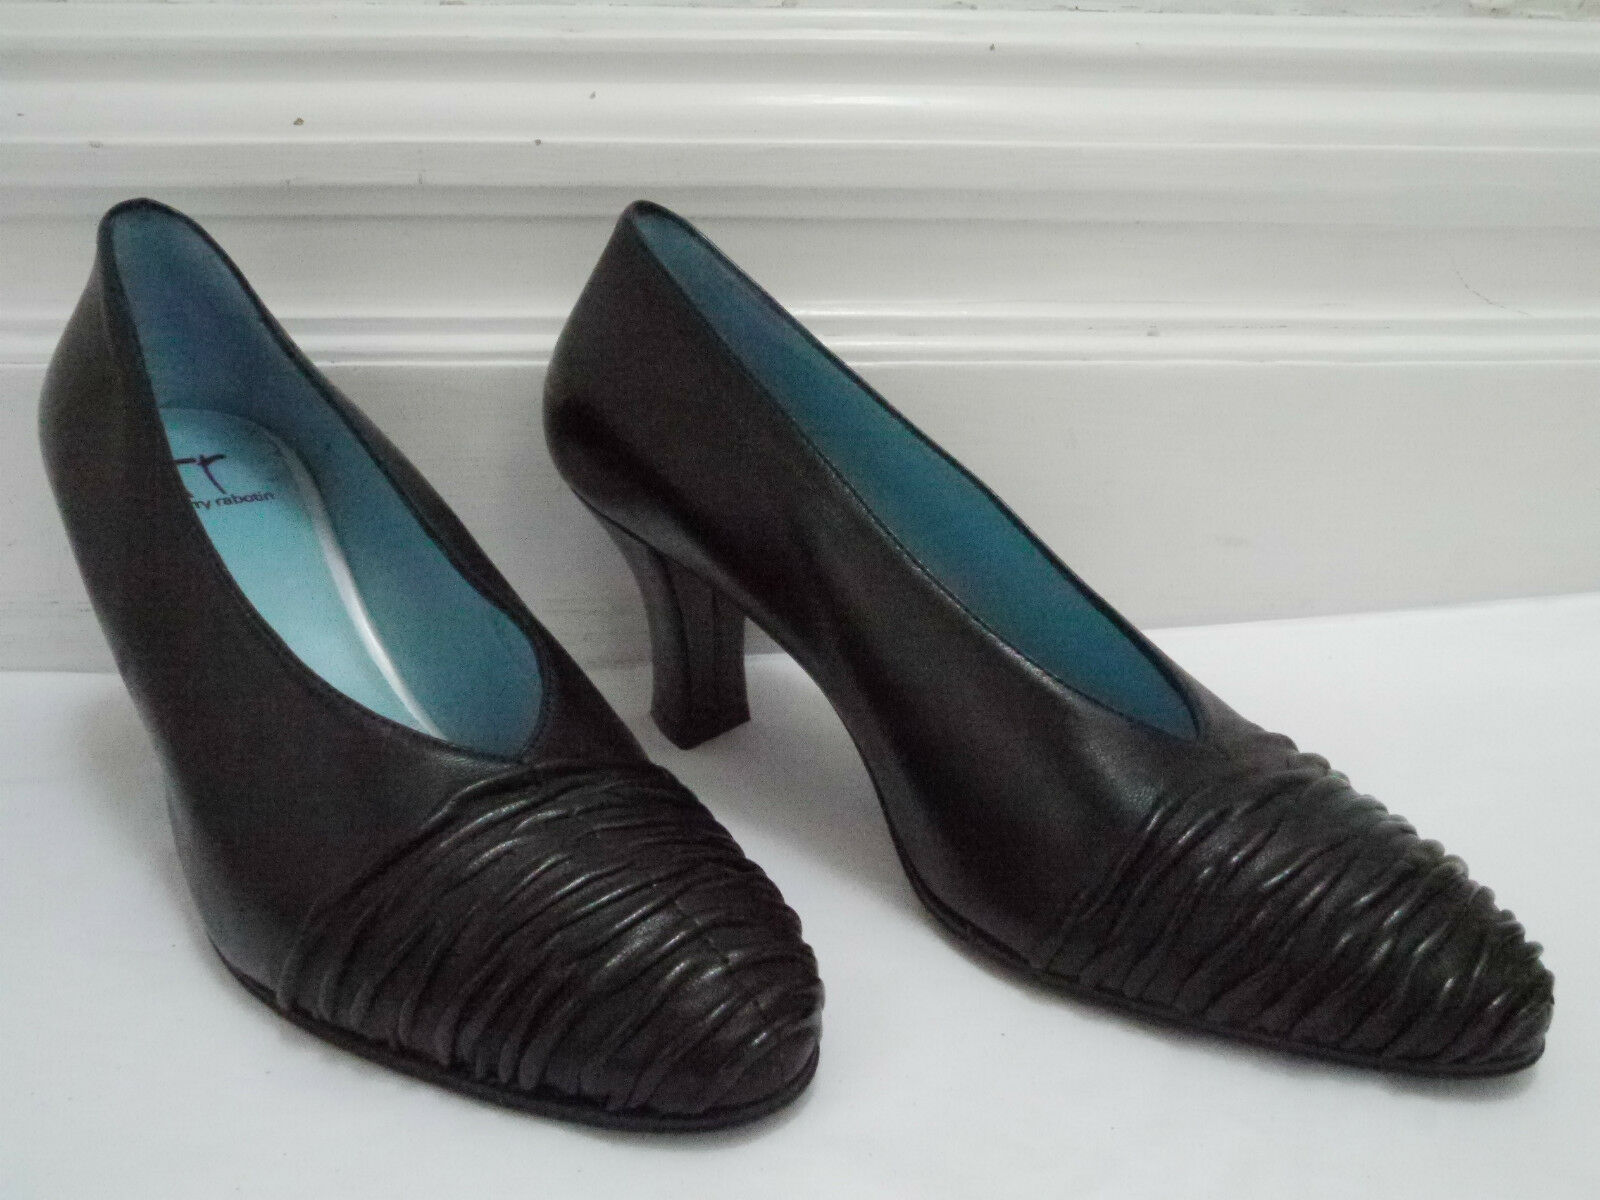 THIERRY RABOTIN $410 black leather size heels pumps shoes size leather 39 WORN ONCE d5c5ad